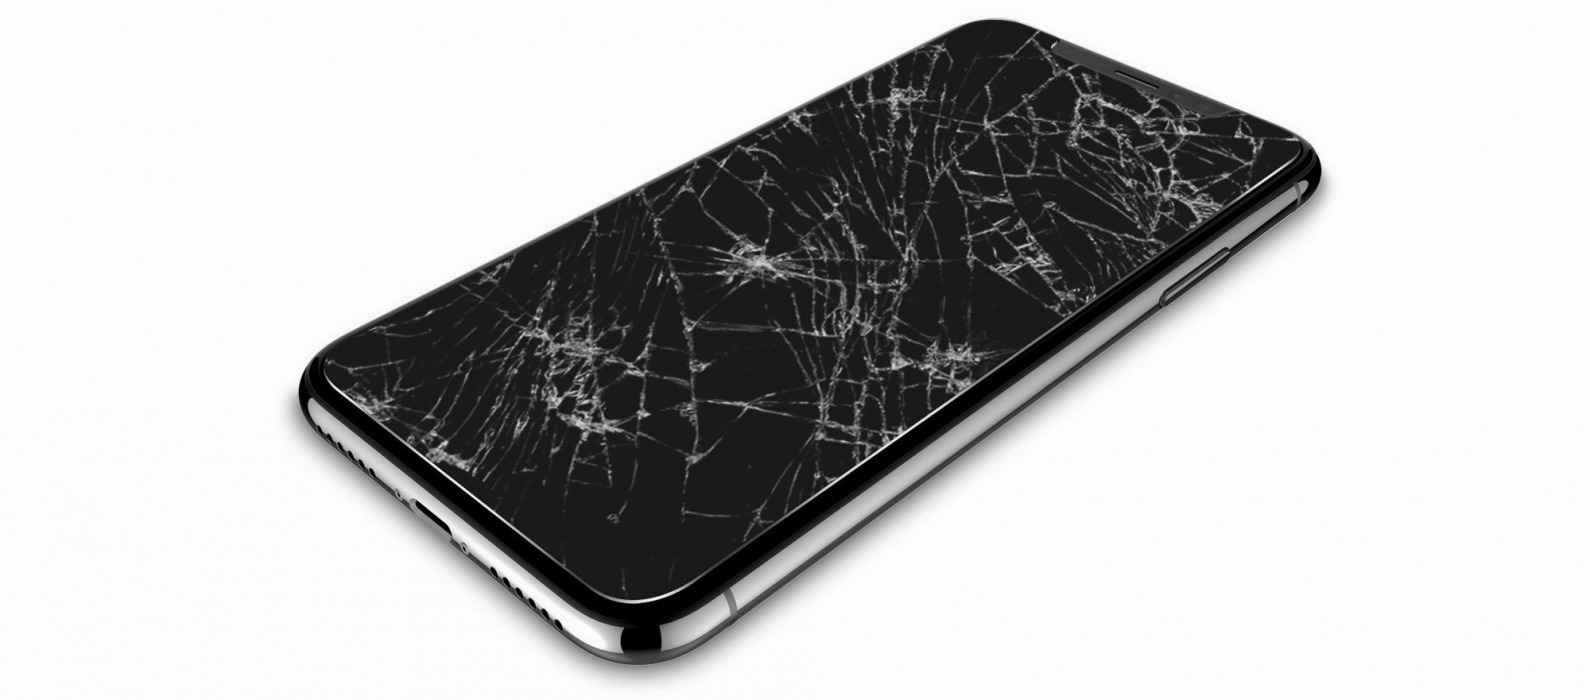 Iphone life best apps top tips great gear iphonelife theres no reason to risk your shiny new iphone xget the protection your device needs with patchworks level itg series case 1295 for the iphone x ccuart Images